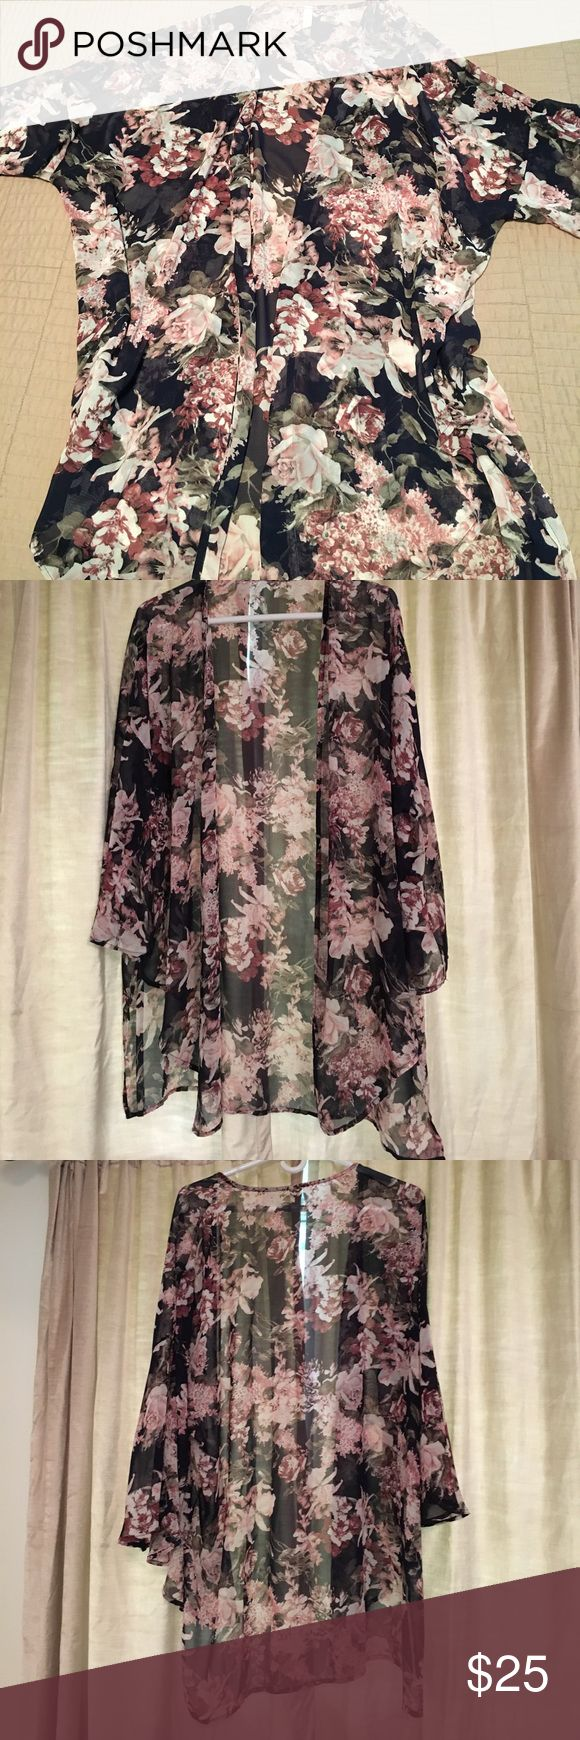 Maternity Kimono This has been worn only once! The perfect layering top that can be dressed up or worn casually. The floral chiffon bell sleeve kimono can be paired with jeans and heels for a night out or with leggings for running errands. This flowy top is great for all seasons! Pinkblush Tops Blouses